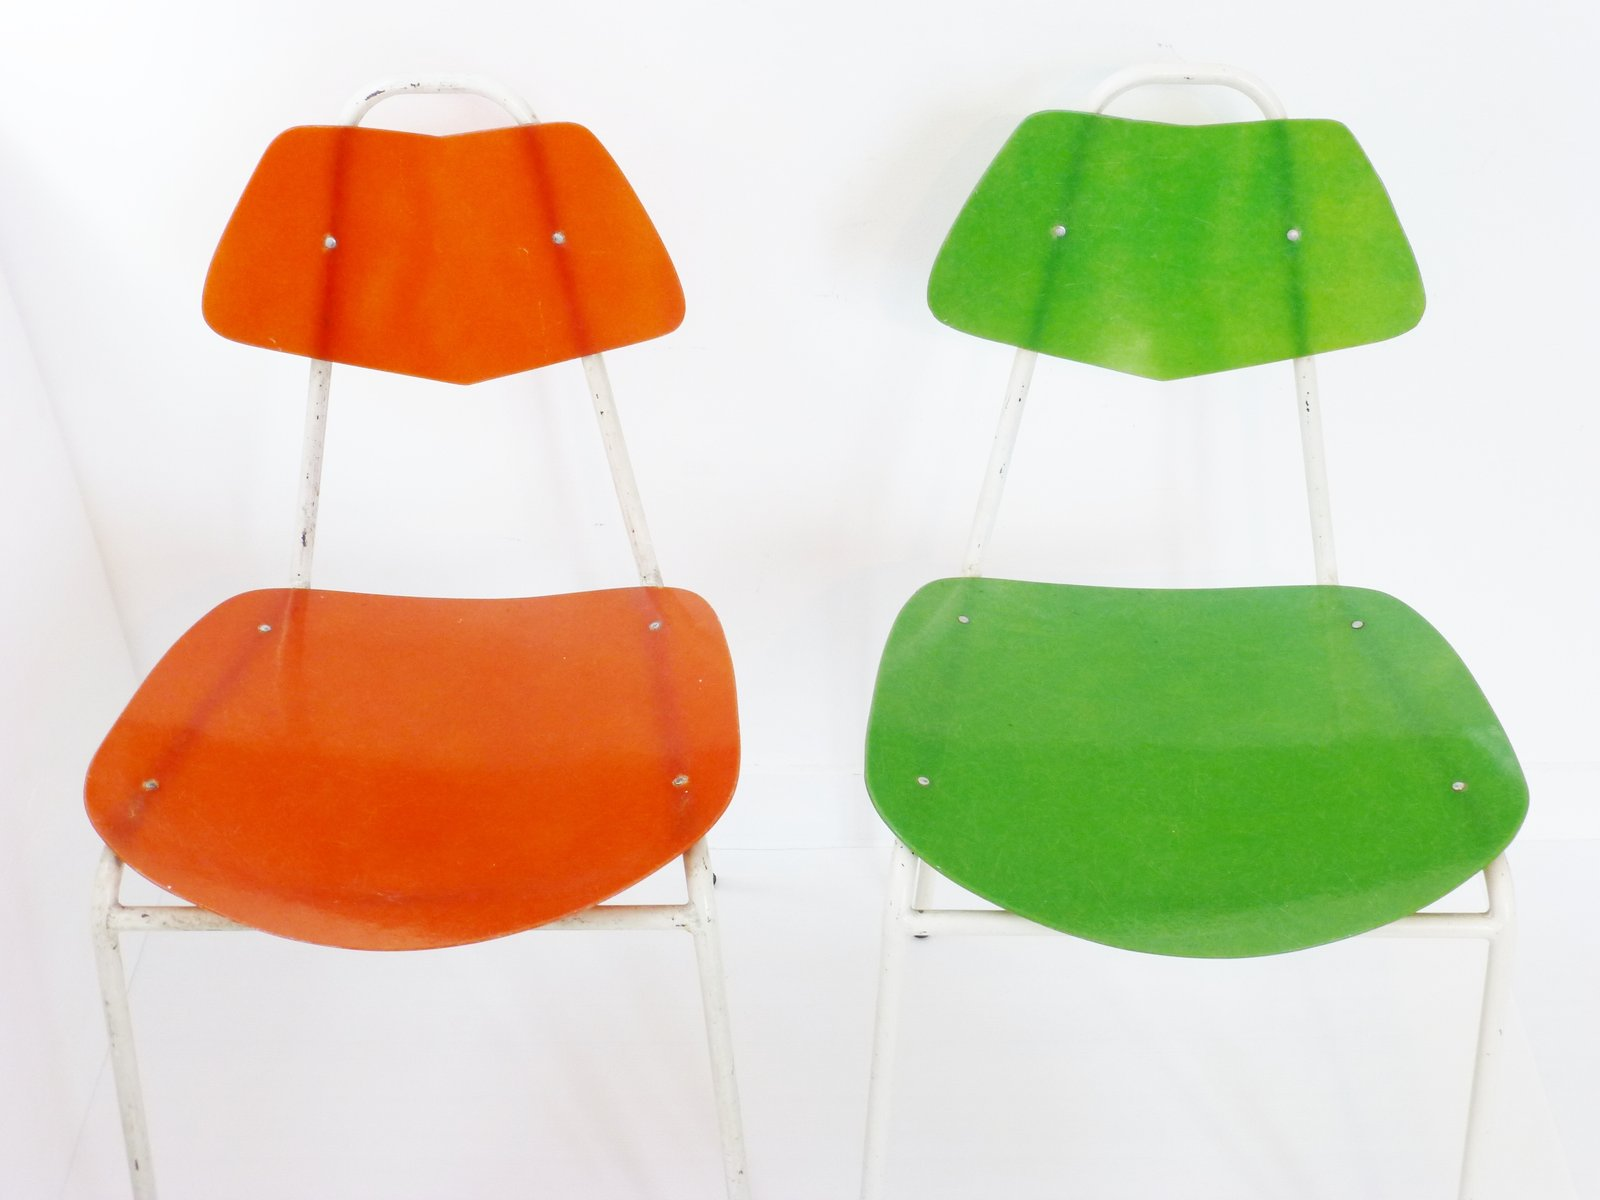 French Fiberglass Chairs 1950s Set of 2 for sale at Pamono